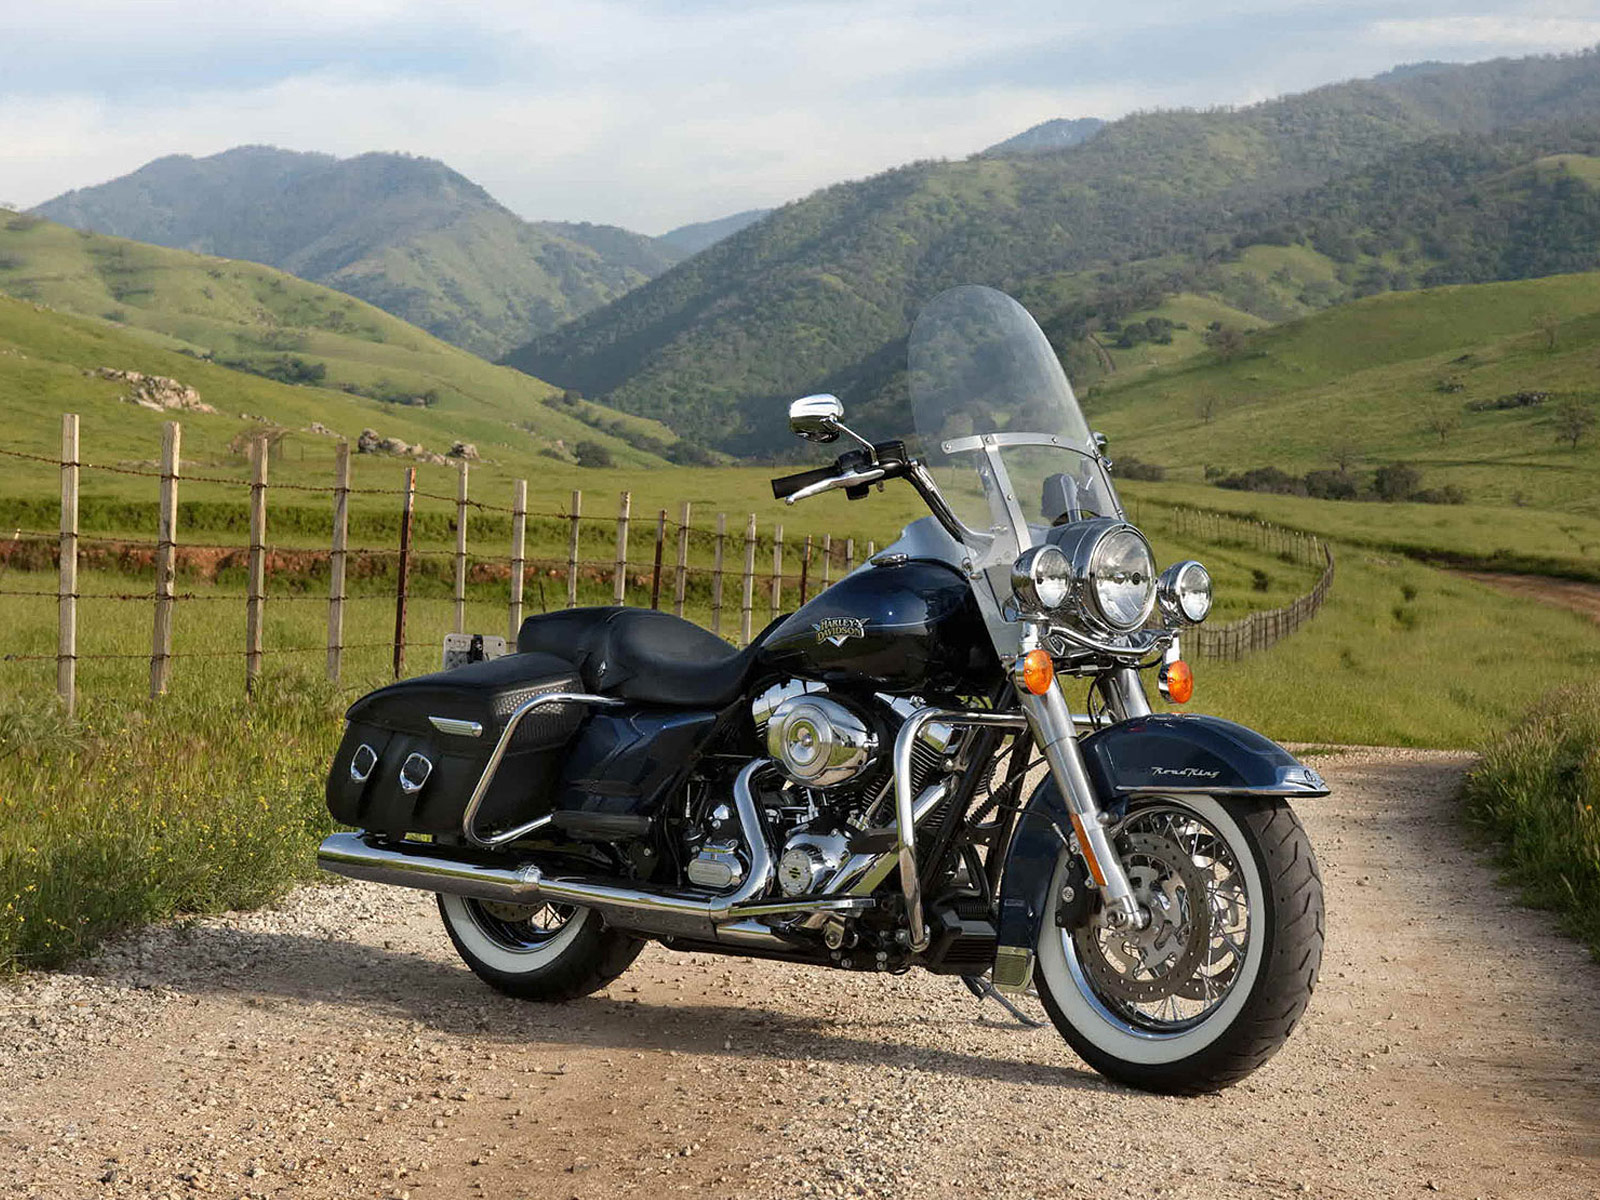 Motorcycles: 2012 Harley-Davidson FLHRC Road King Classic